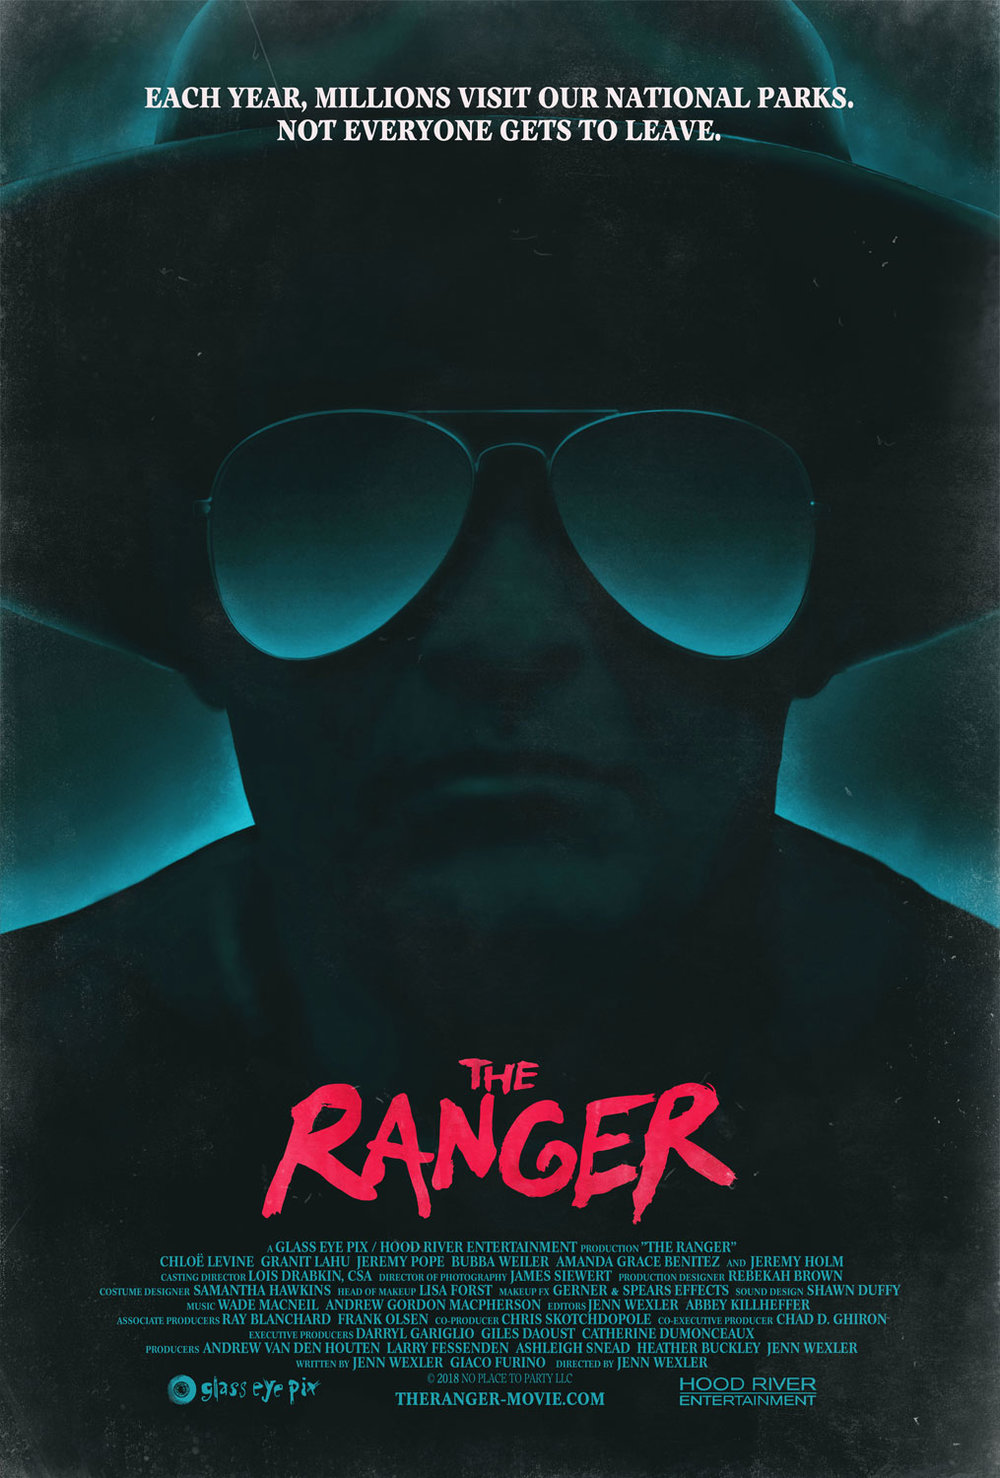 79thbroadway_the_ranger_movie_poster.jpg